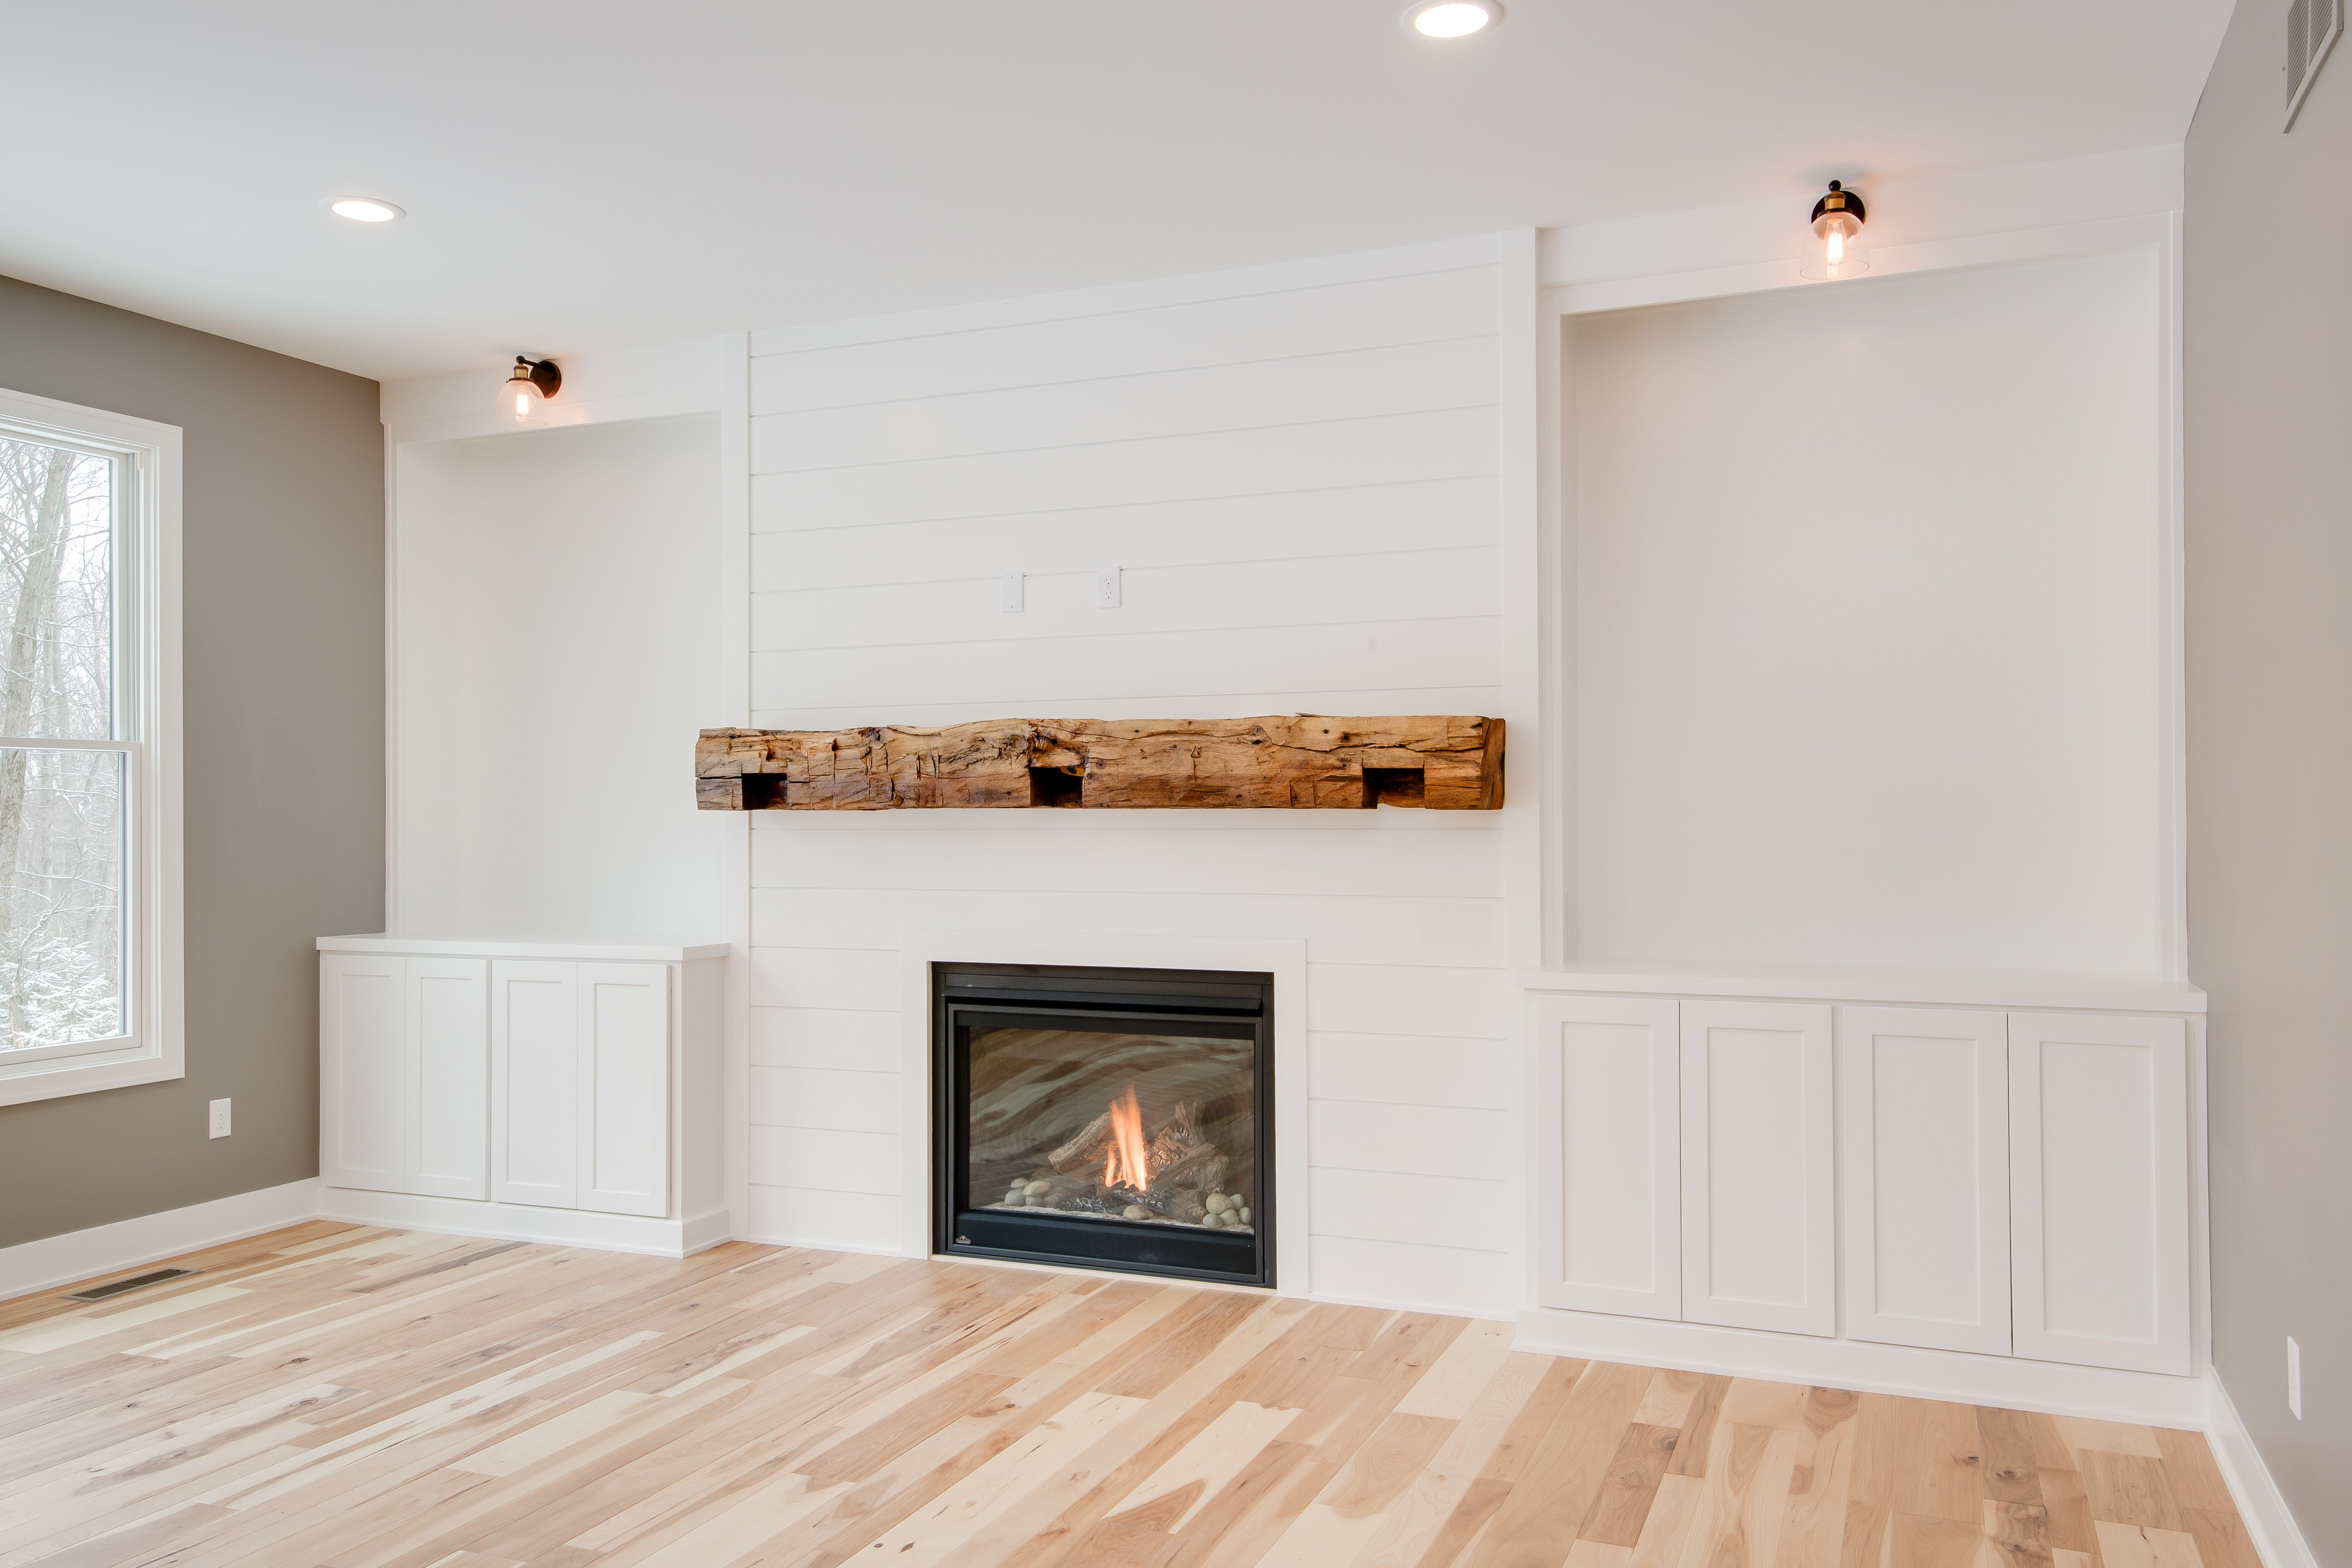 Living Room Natural Hickory Wood Floors Painted Shiplap Fireplace Surround Gas Fireplace Floati Fireplace Built Ins Wood Fireplace Surrounds Home Fireplace